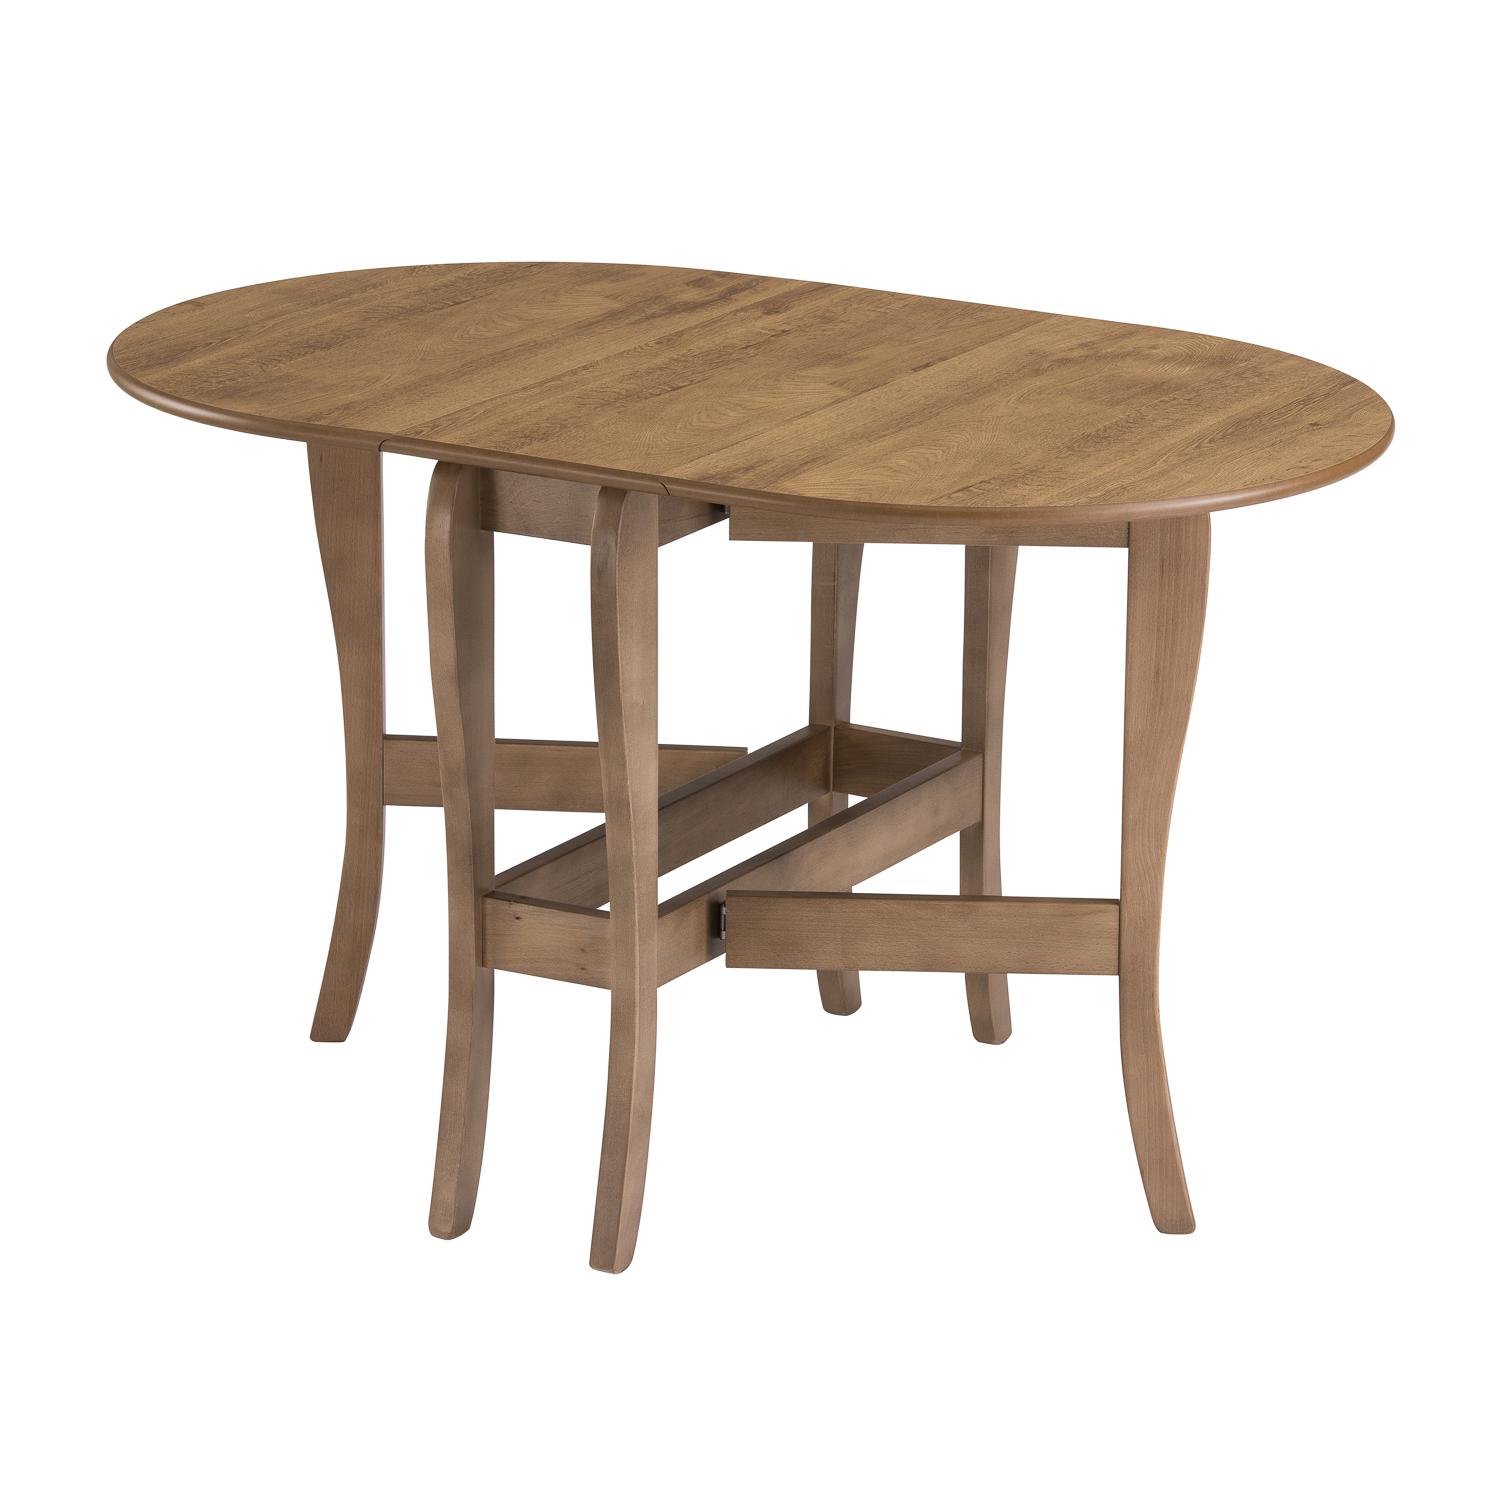 Drop Leaf Table HEATPROOF Folding Dining Kitchen Gateleg  : Web 1904 from www.ebay.co.uk size 1500 x 1500 jpeg 533kB